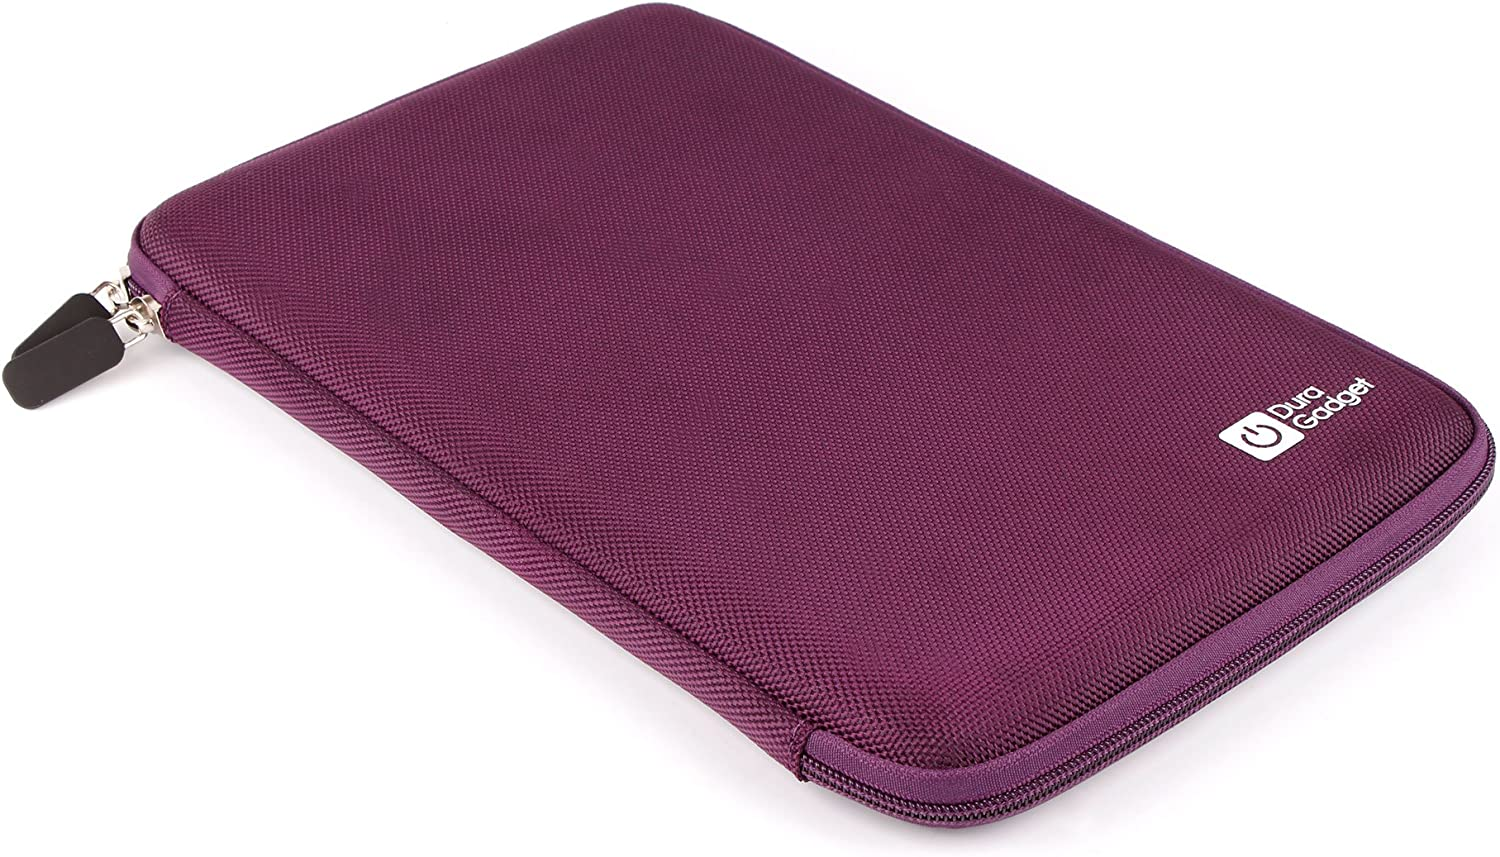 "DURAGADGET 10 Inch Purple Scratch Resistant Protective Shell Zip Pouch With Soft Felt Lining For Acer Iconia Tab A211, Acer Iconia Tab A210 10.1 Inch Multi-Touch LED Tablet (Nvidia Tegra 3 T30L 1.2GHz, 16GB SSD, Android 4.1) & Acer Iconia Tab A200 10.1"" Tegra2DC (1GB RAM, 8GBeMMC, Android 4.0)"